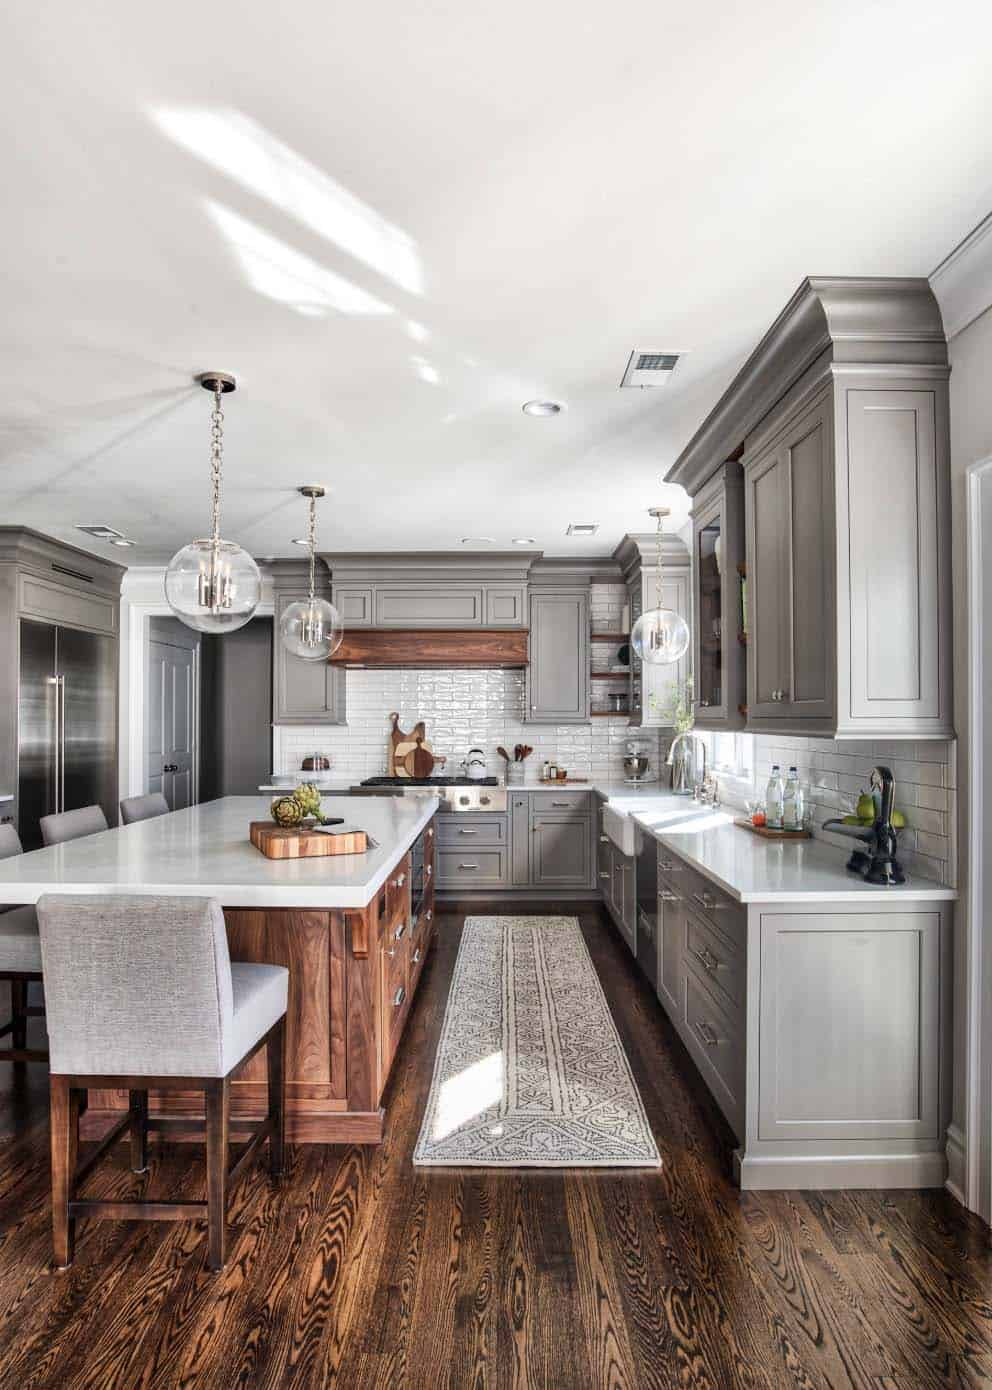 Kitchen Cabinet Remodel Ideas: 25+ Absolutely Gorgeous Transitional Style Kitchen Ideas